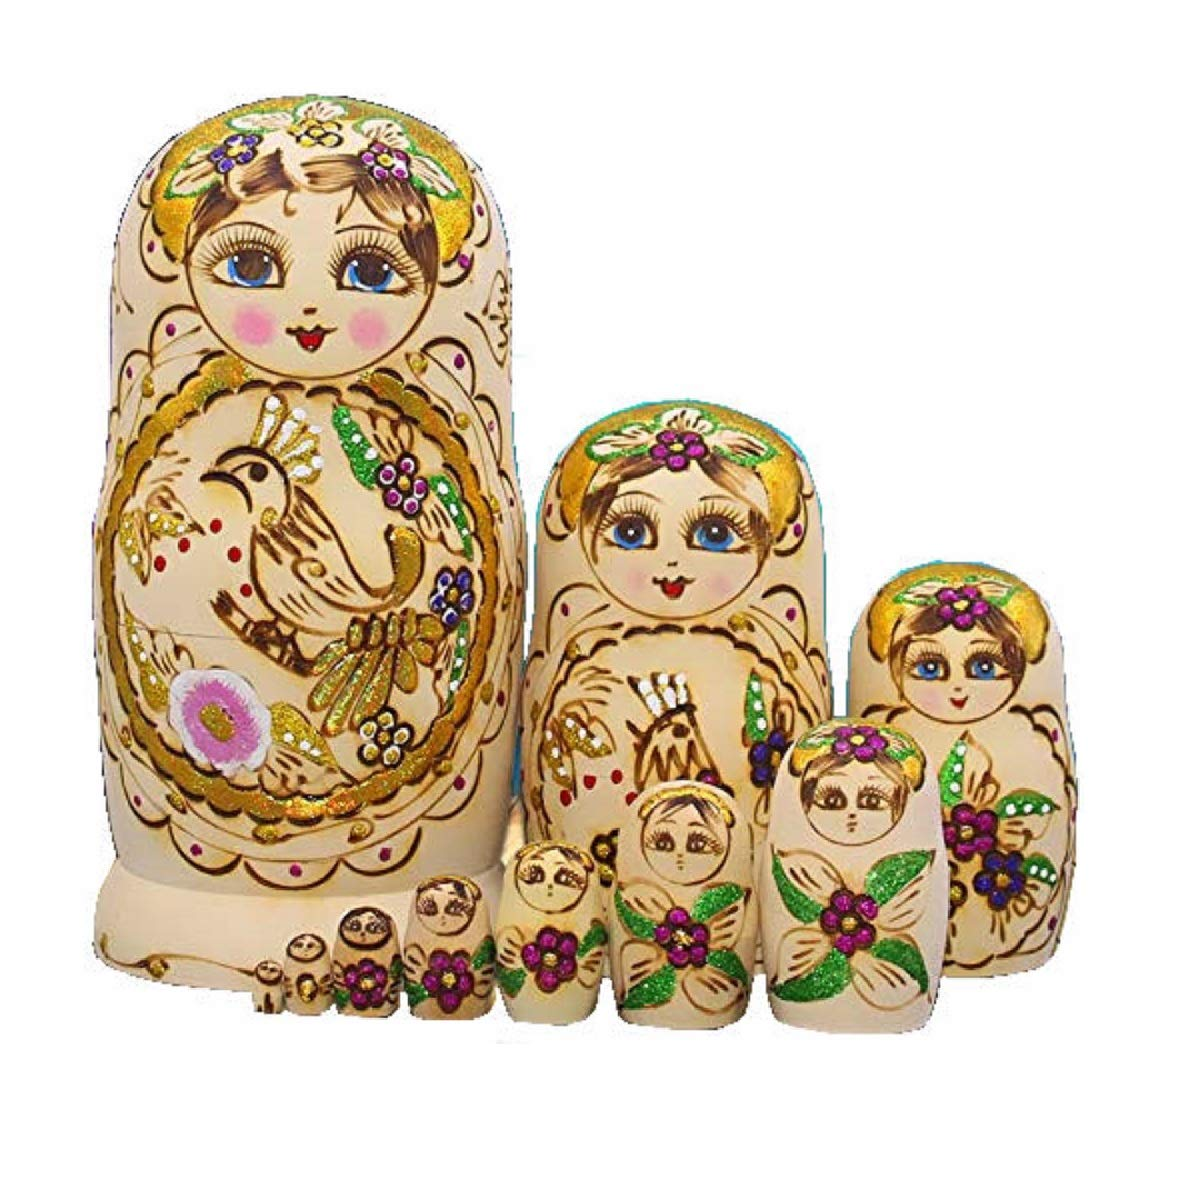 LK King&Light 10pcs Wooden Russian Nesting Dolls Matryoshka Toys(Bird) by LK